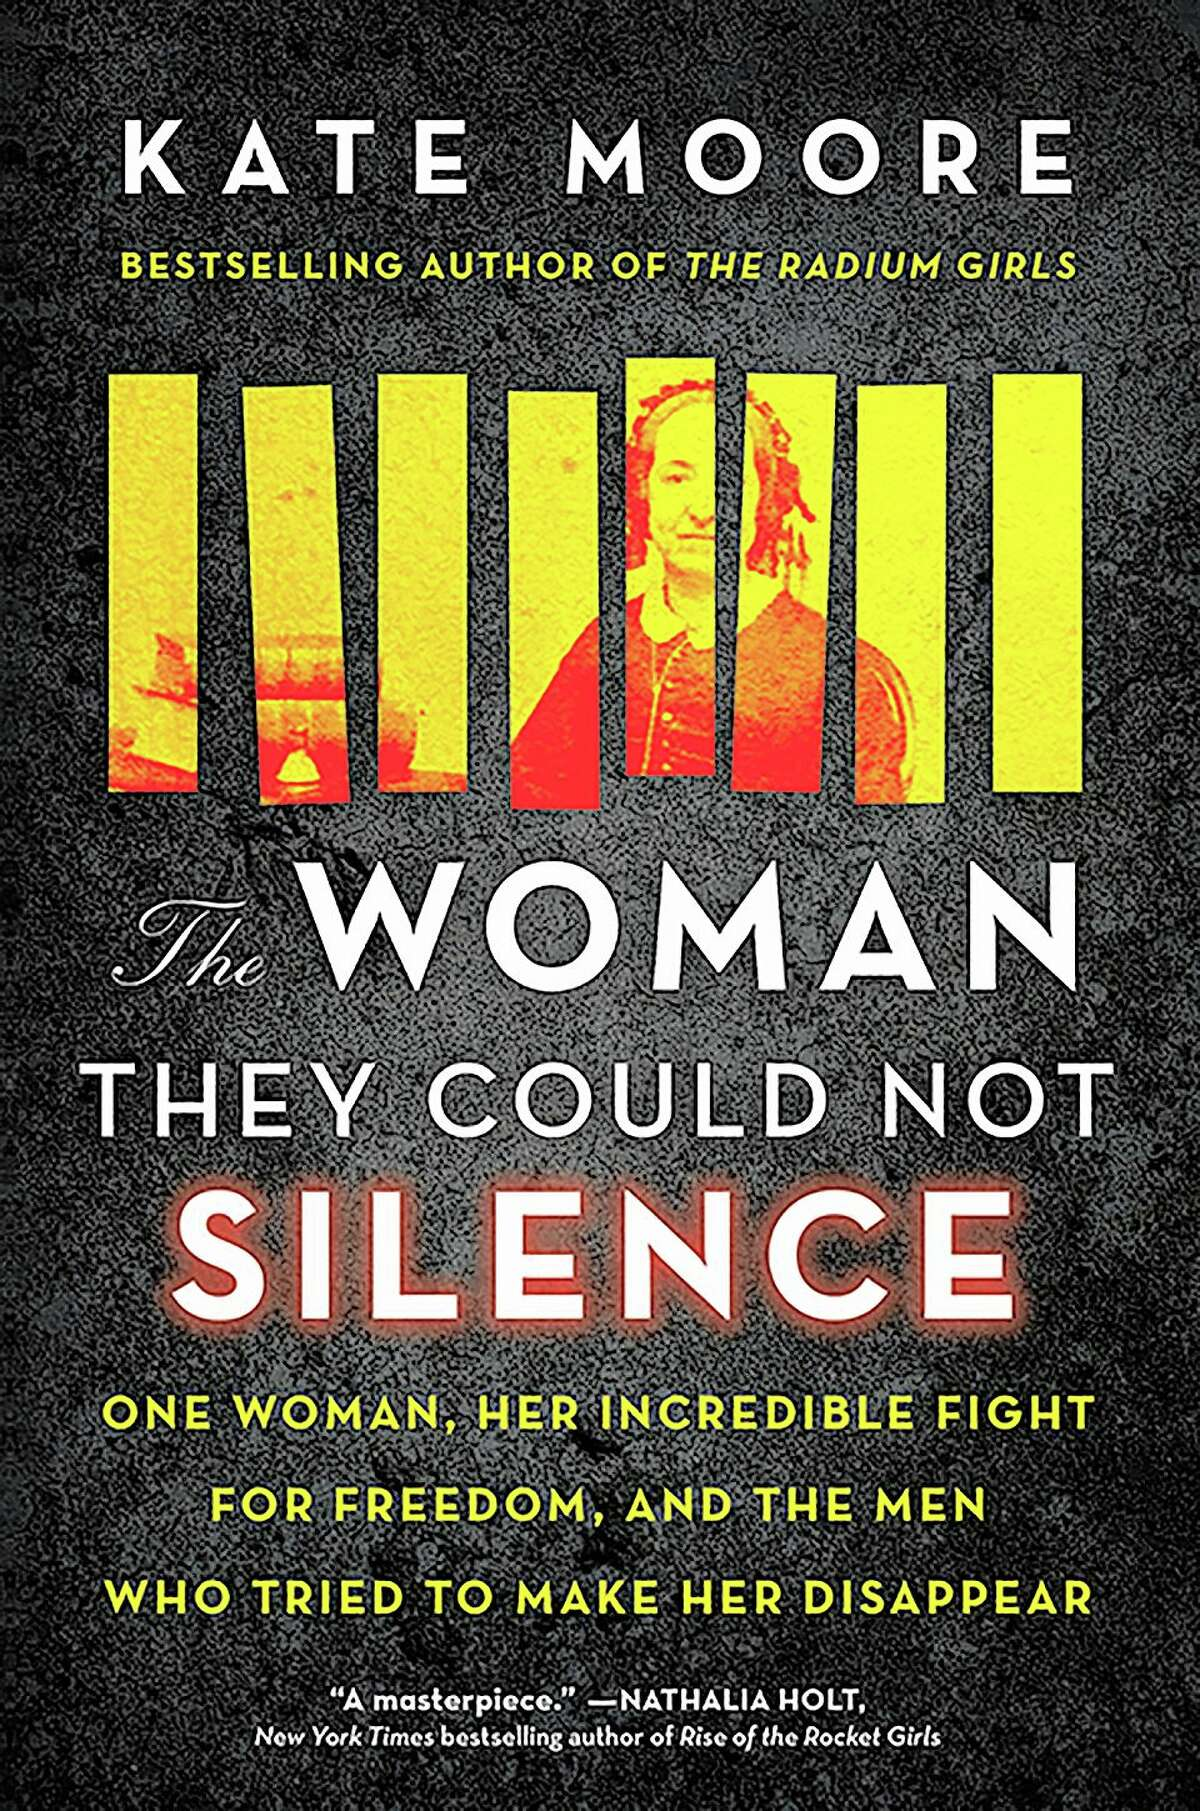 """""""The Woman They Could Not Silence"""" tells the true story of a woman whose husband had her committed to the Illinois State Hospital - then called an insane asylum - in Jacksonville, not because she had mental health issues but because he didn't approve of her behavior."""